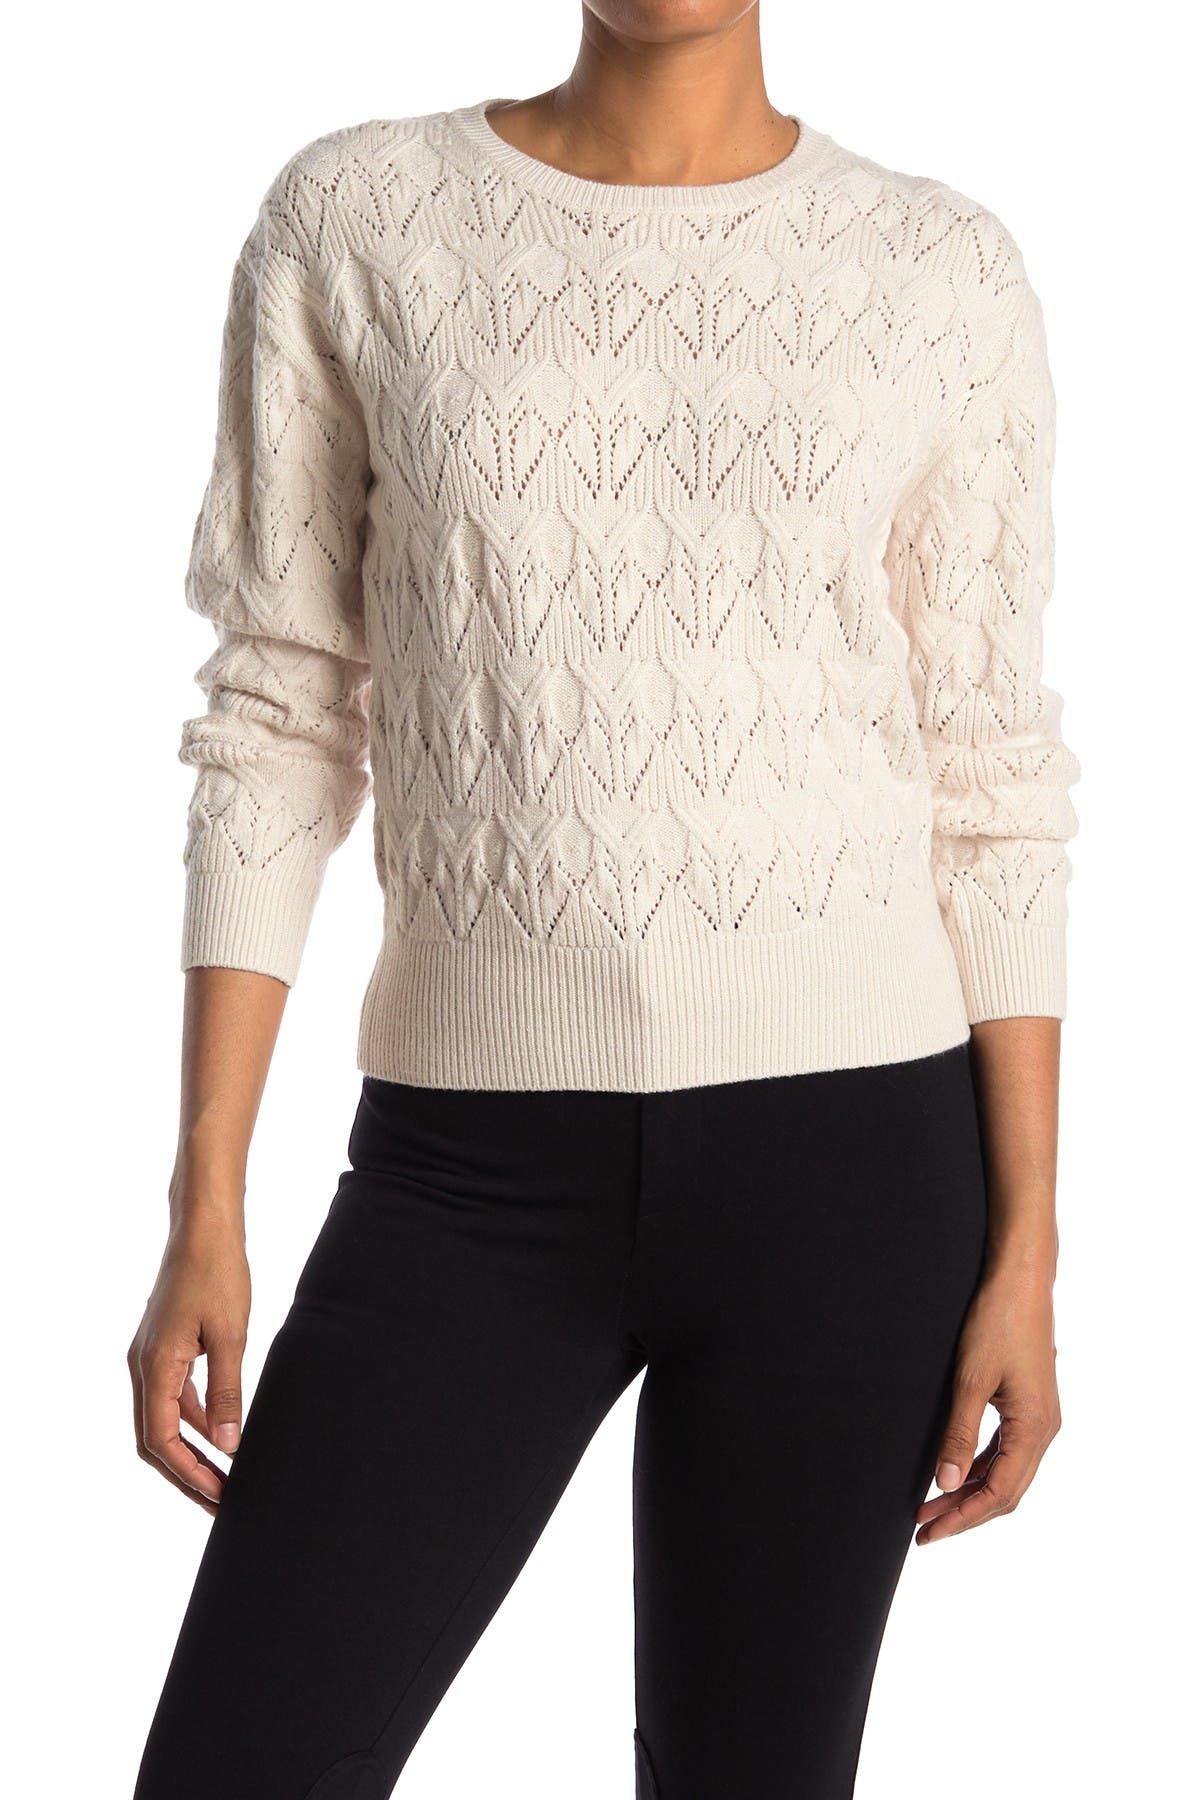 Image of Catherine Catherine Malandrino Long Sleeve Crew Neck Pointelle Detailed Top